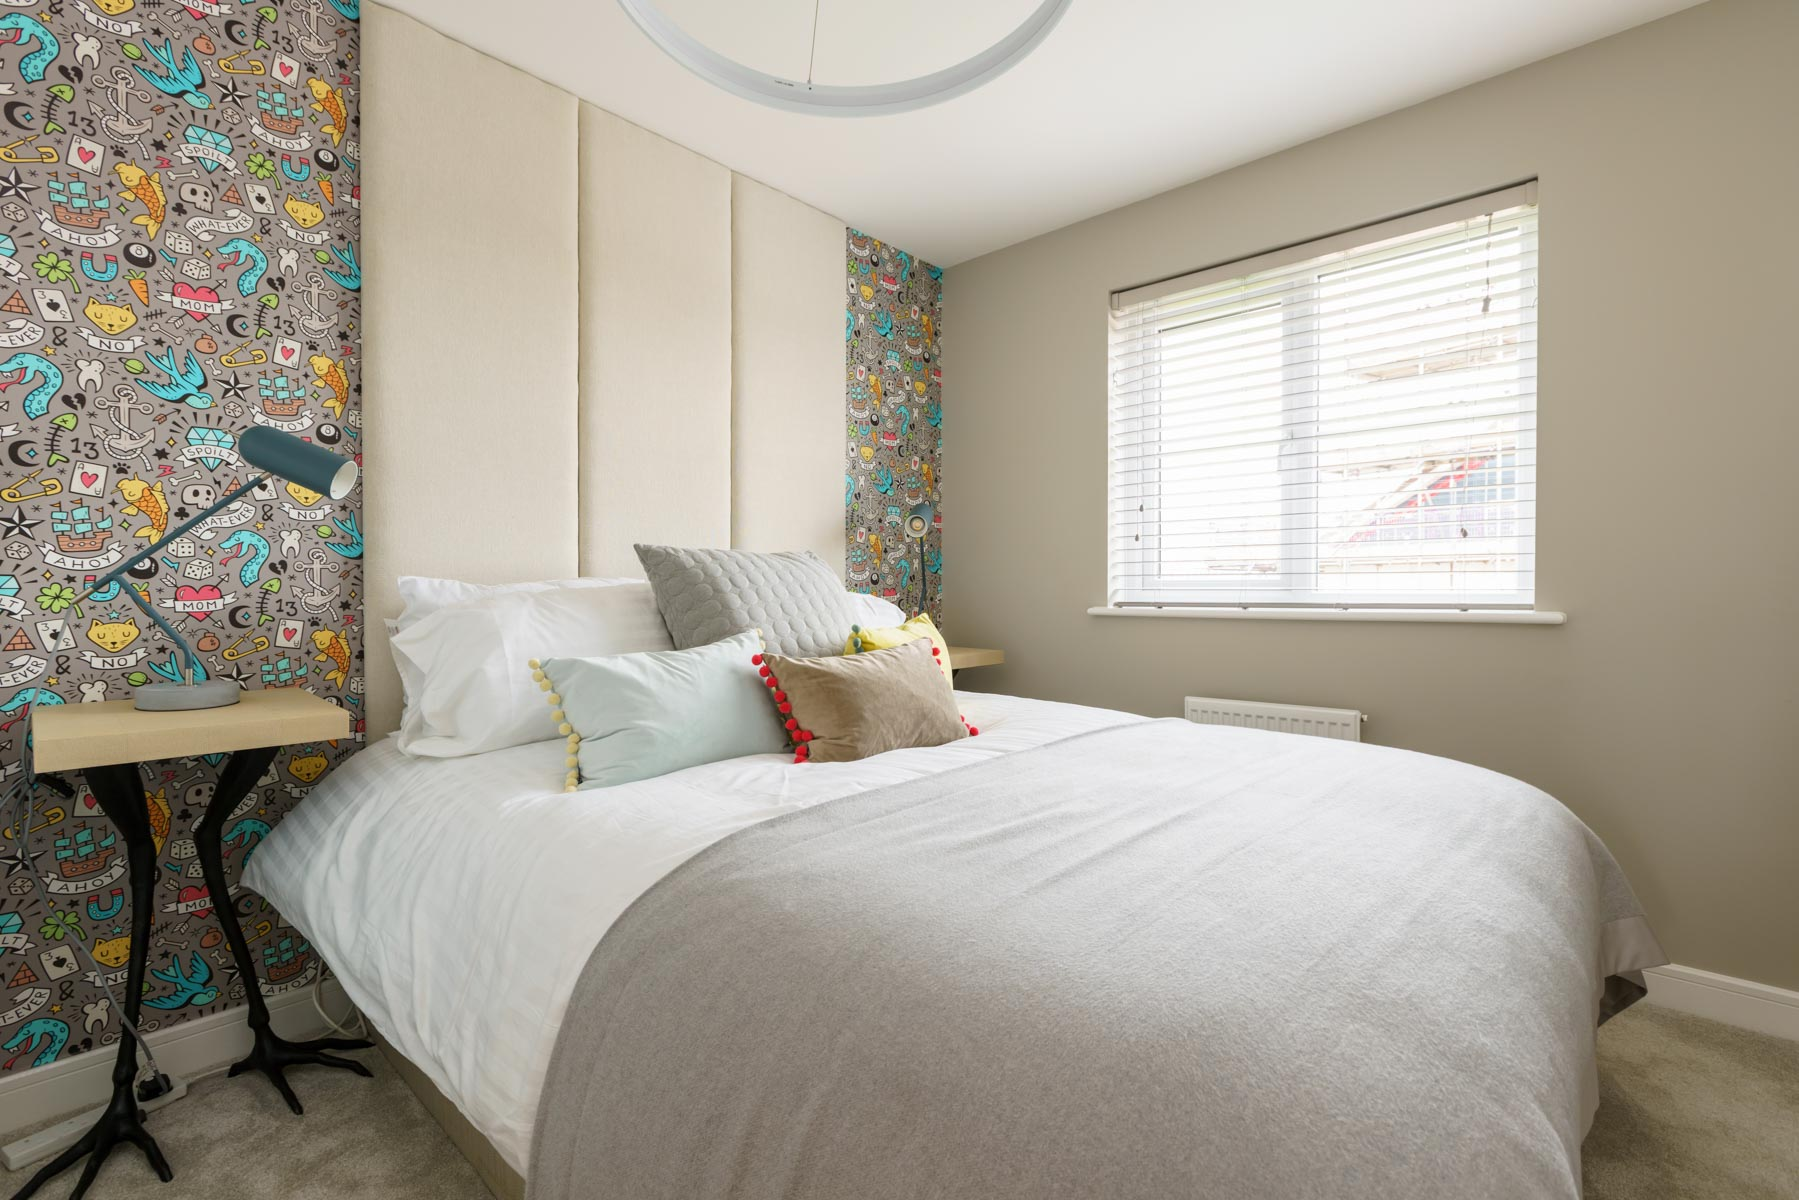 TWEL_Handley Gardens_Gosford Bedroom 2